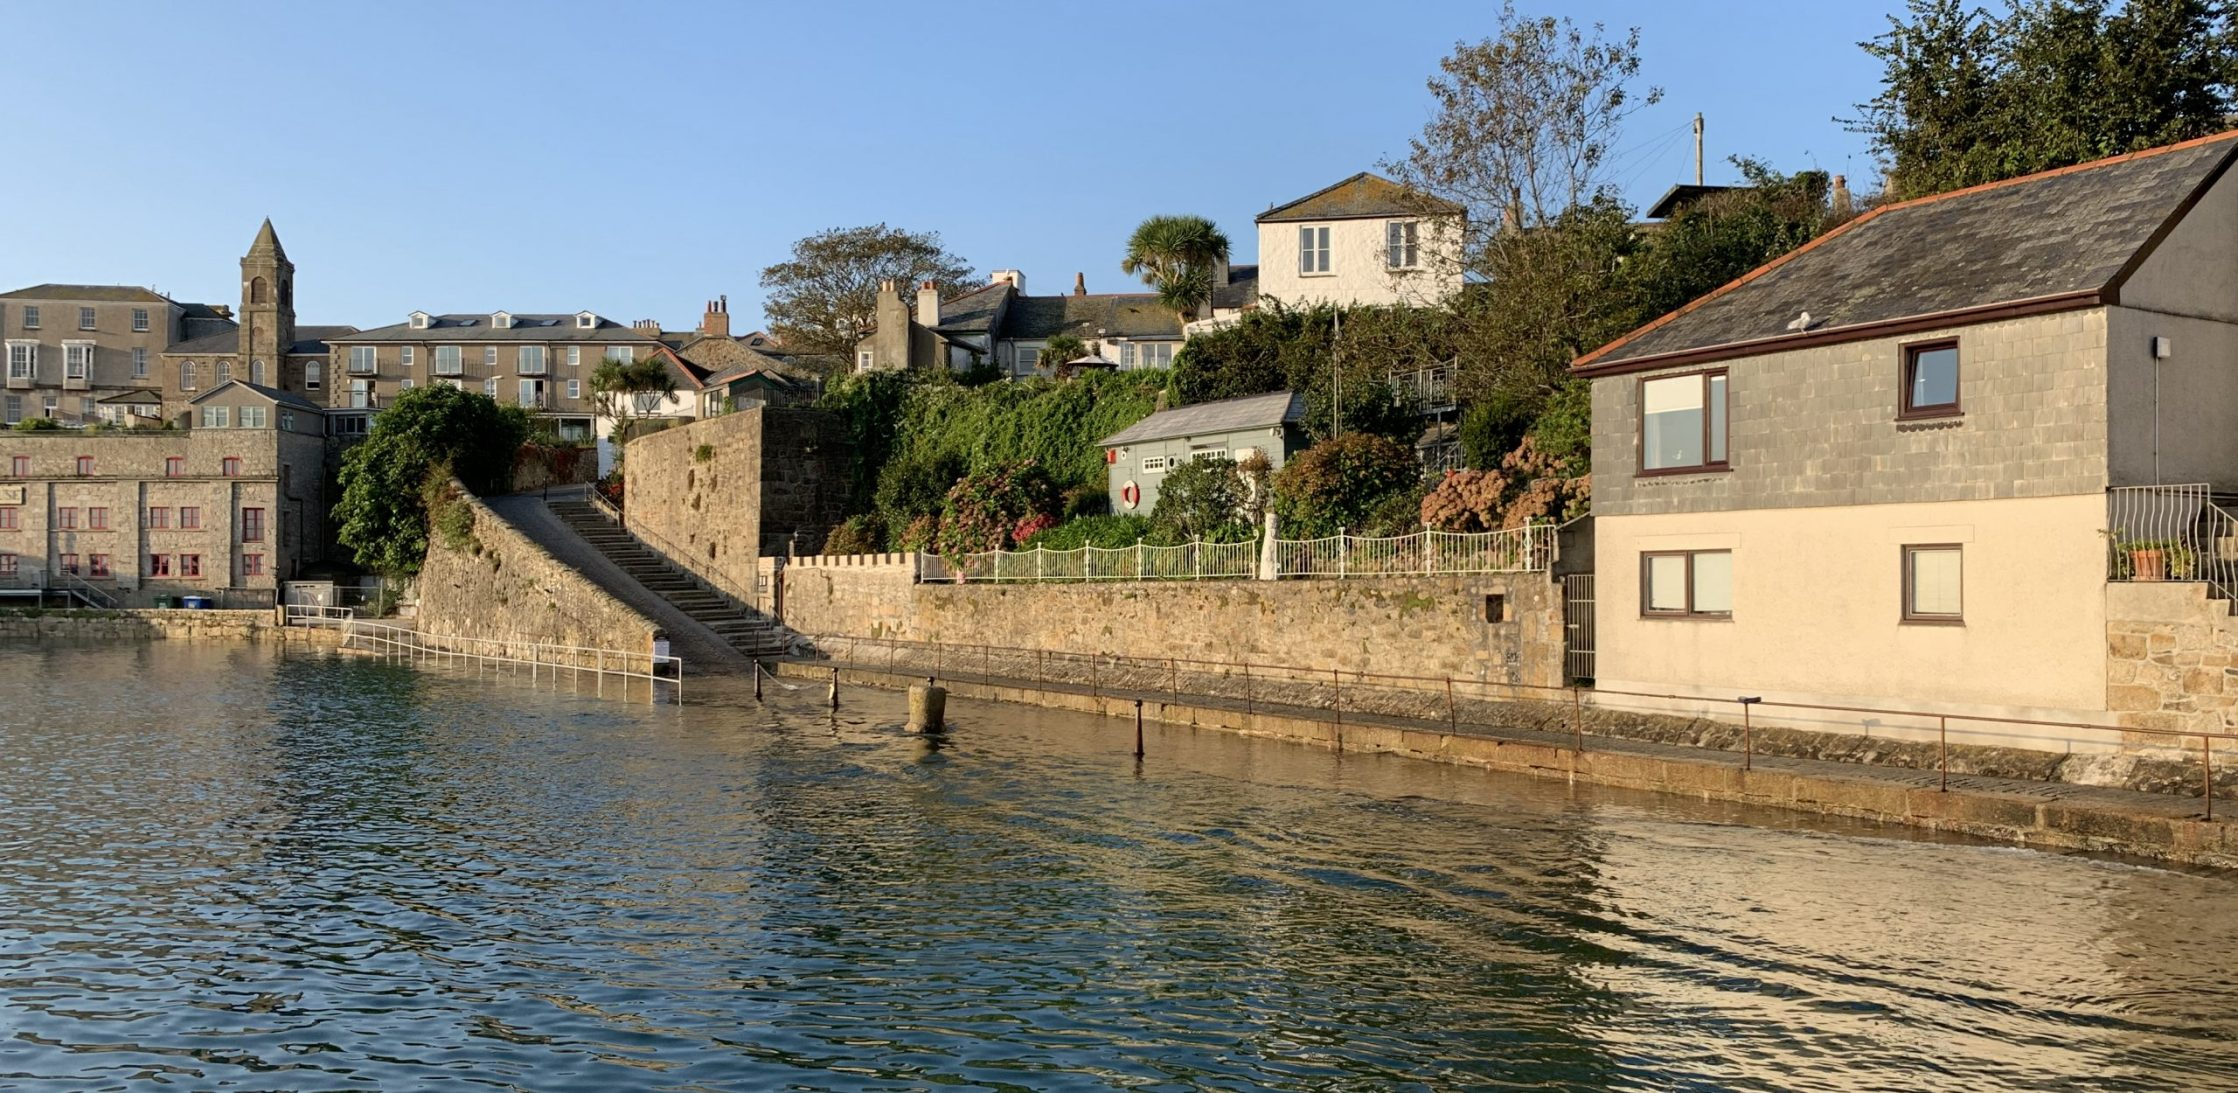 Abbey Slip, Penzance, with the wharf flooded at high tide.